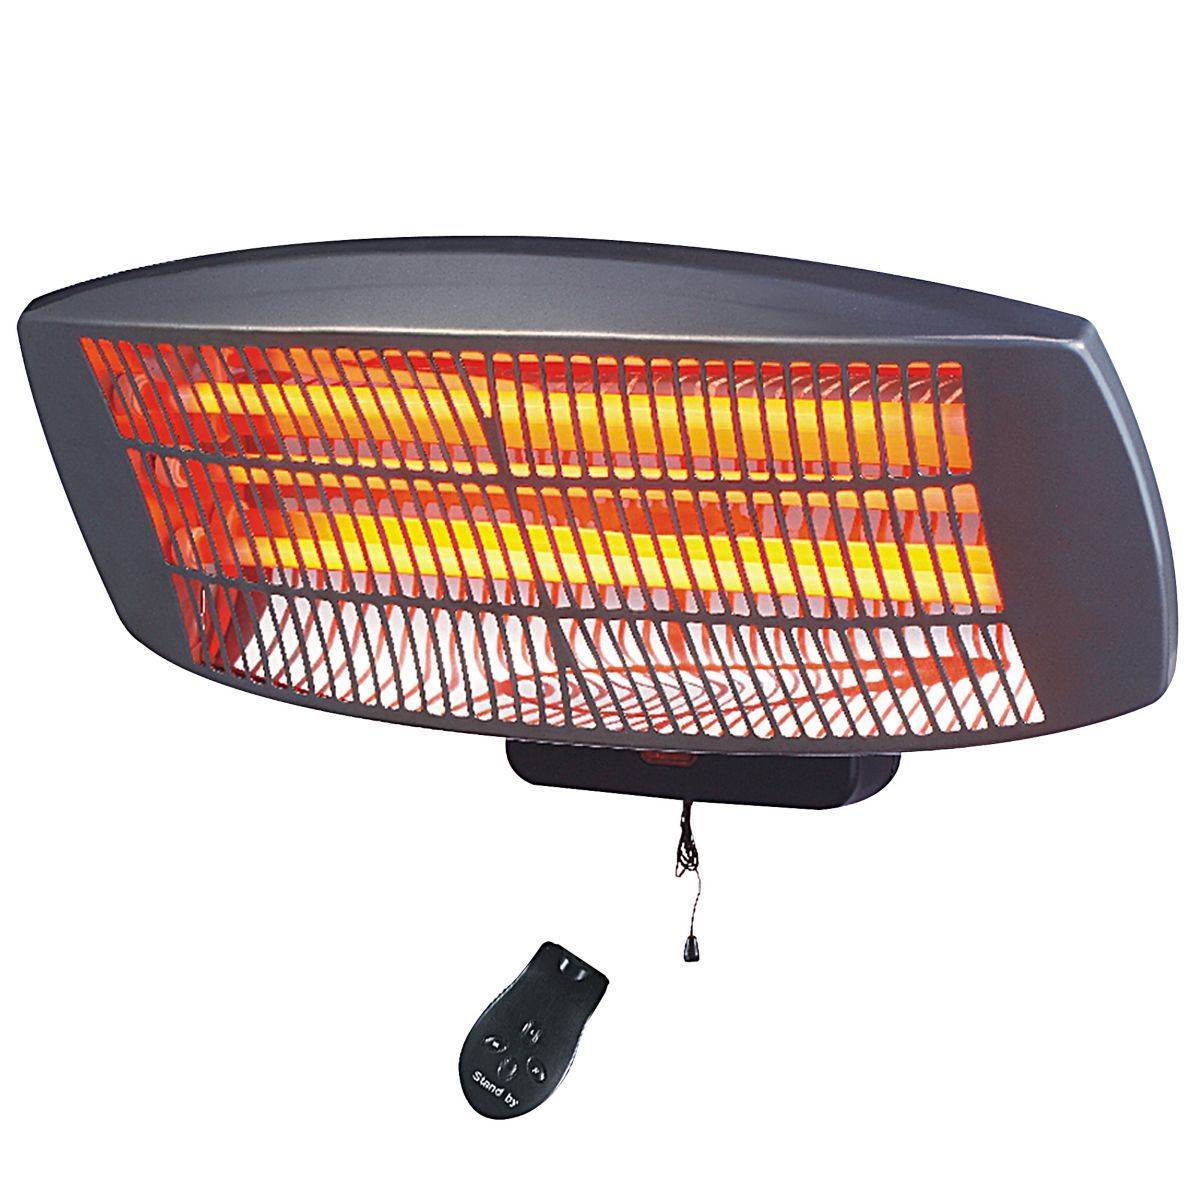 Wall Mounted Infrared Patio Heater With Remote Outdoor